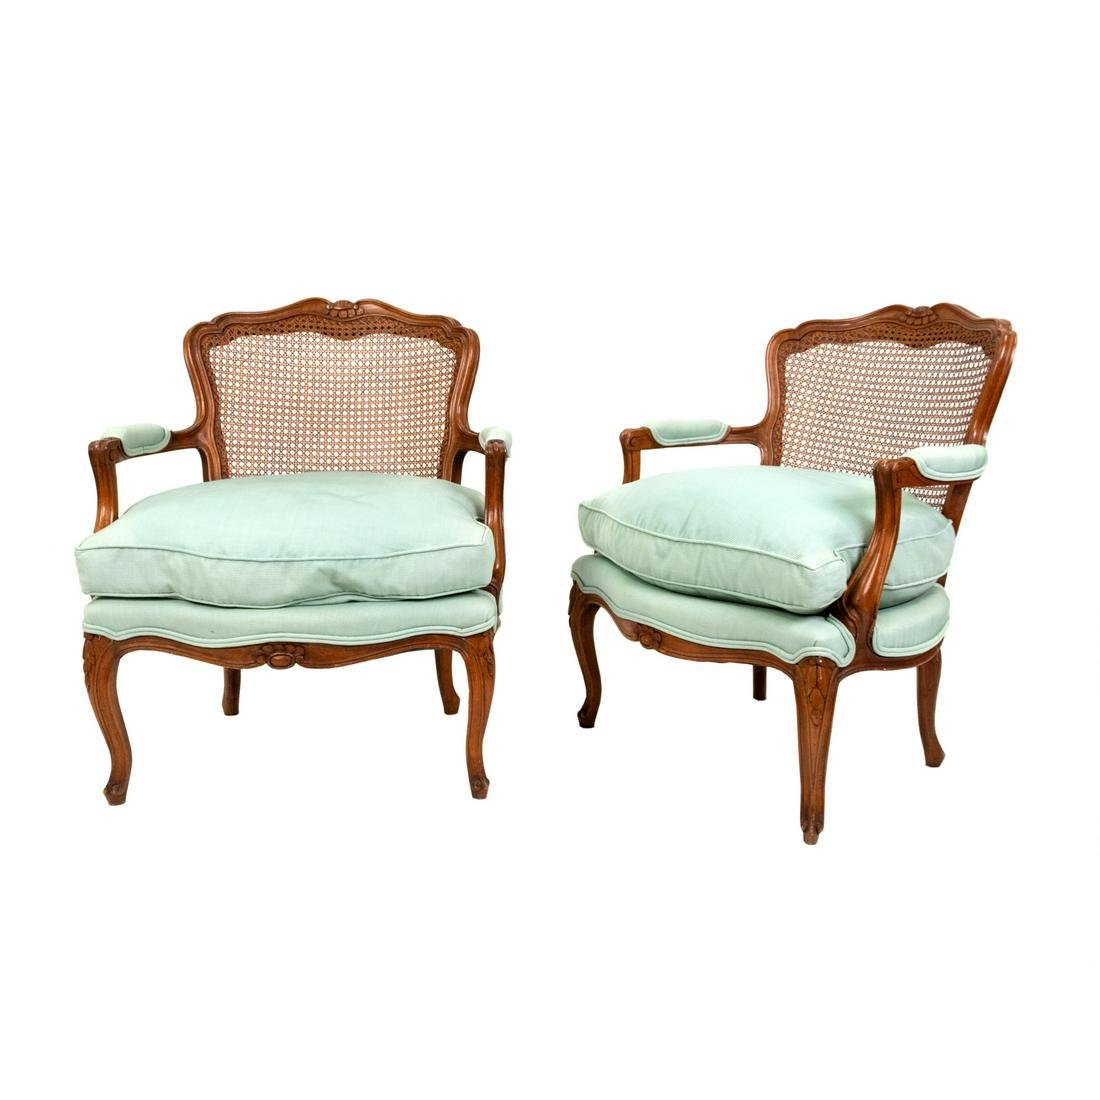 A Pair of French Provincial Louis XV Style Cane-Back